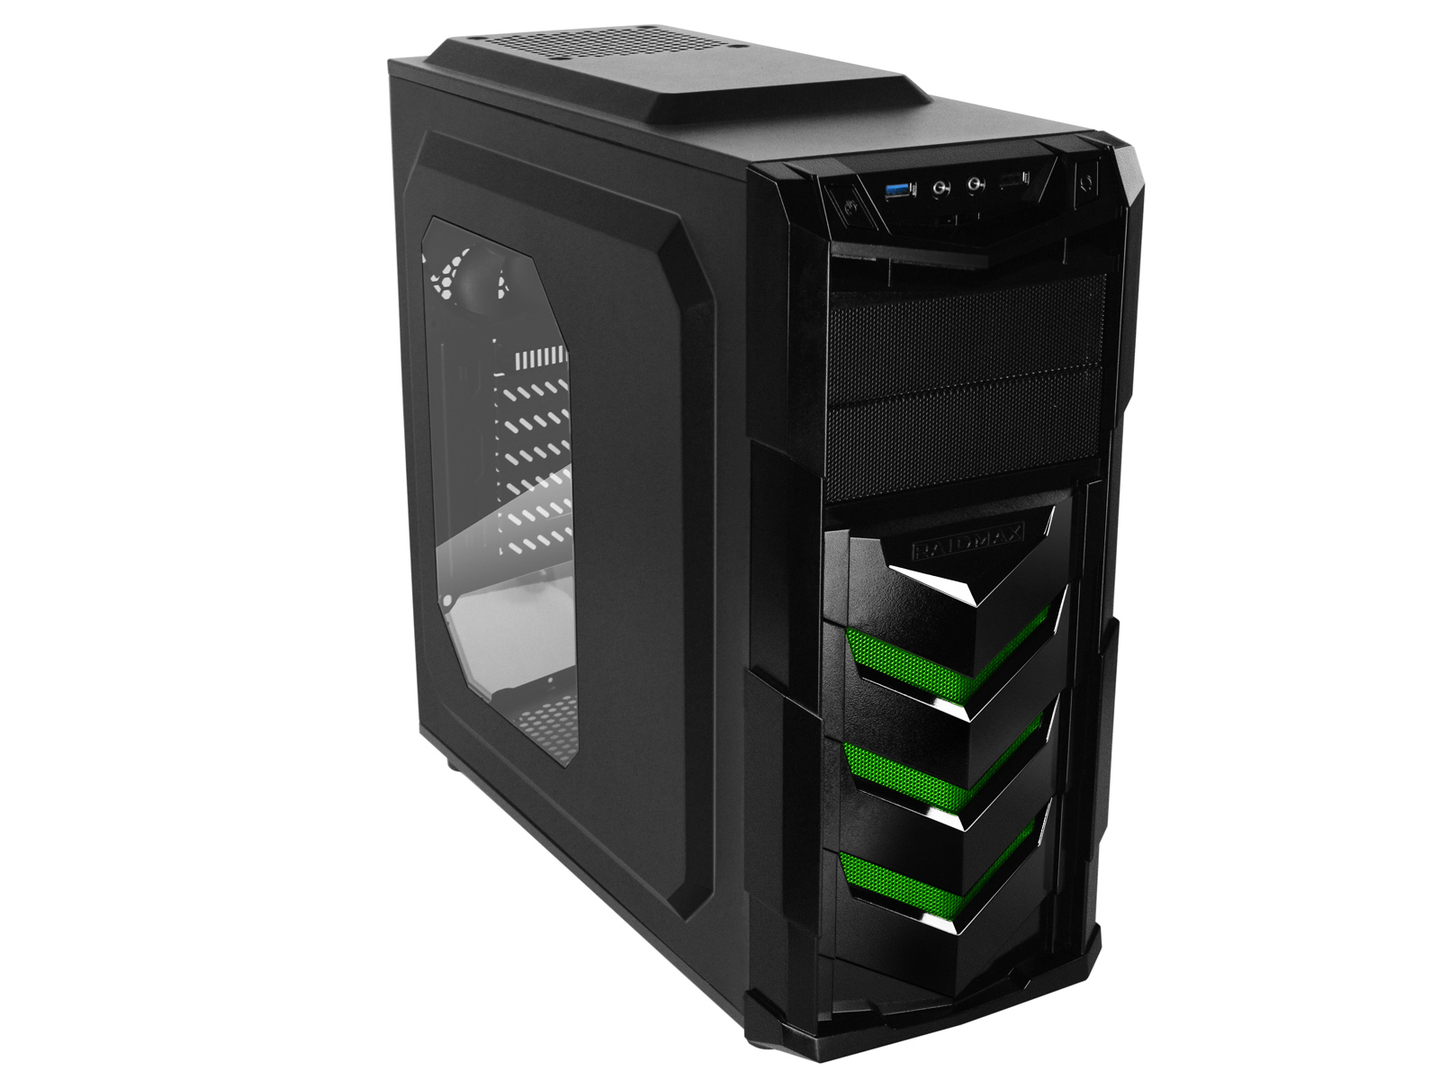 torre gamer cpu pc nuevo intel core i7 7700 gtx 1050 rx 460 gddr5 memoria ram 4gb ddr4 blindada board asrock disco duro 2tb 2000gb juegos gamer chasis case atx